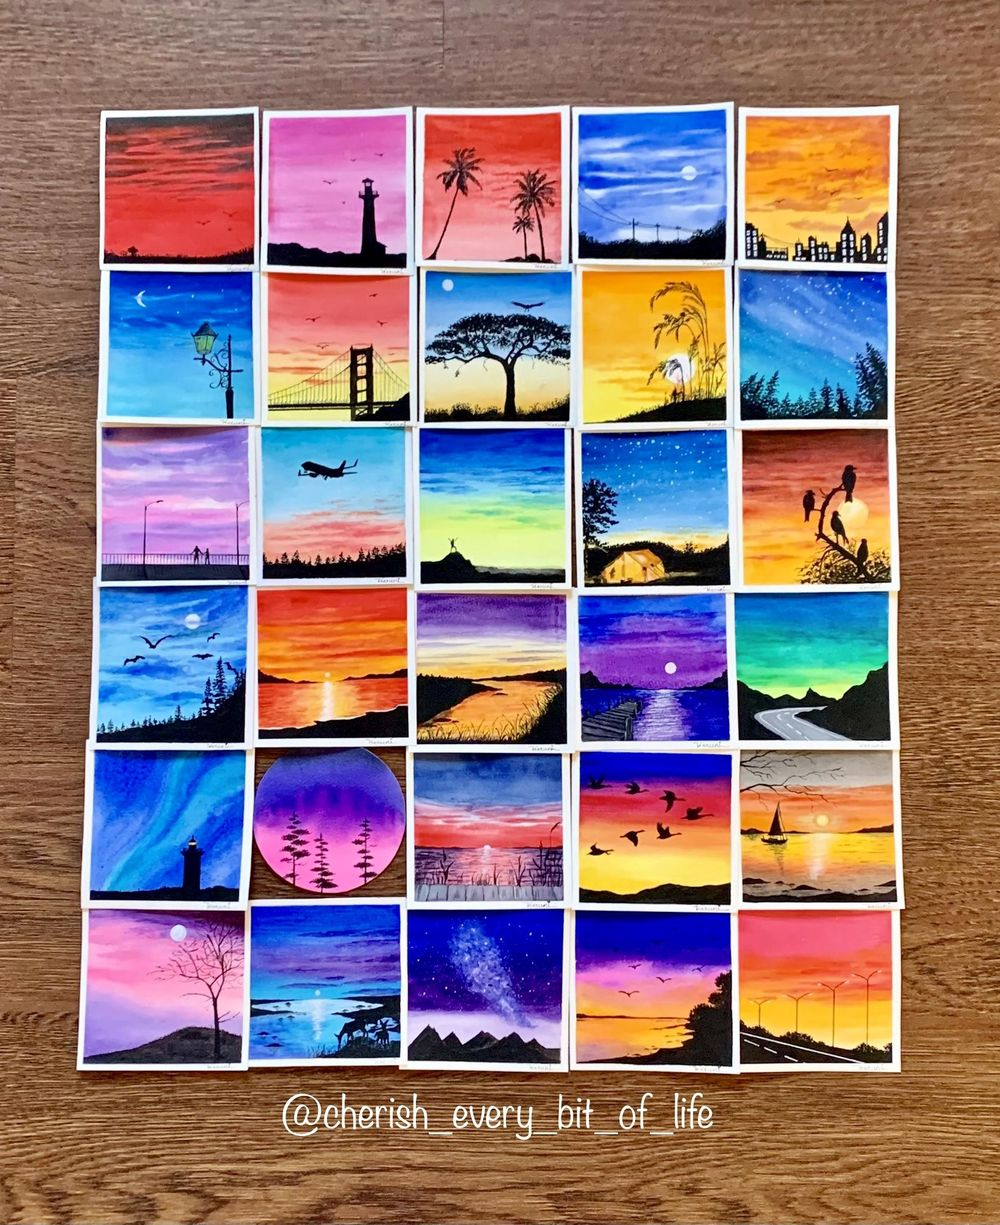 30 days watercolor challenge by Z - image 1 - student project